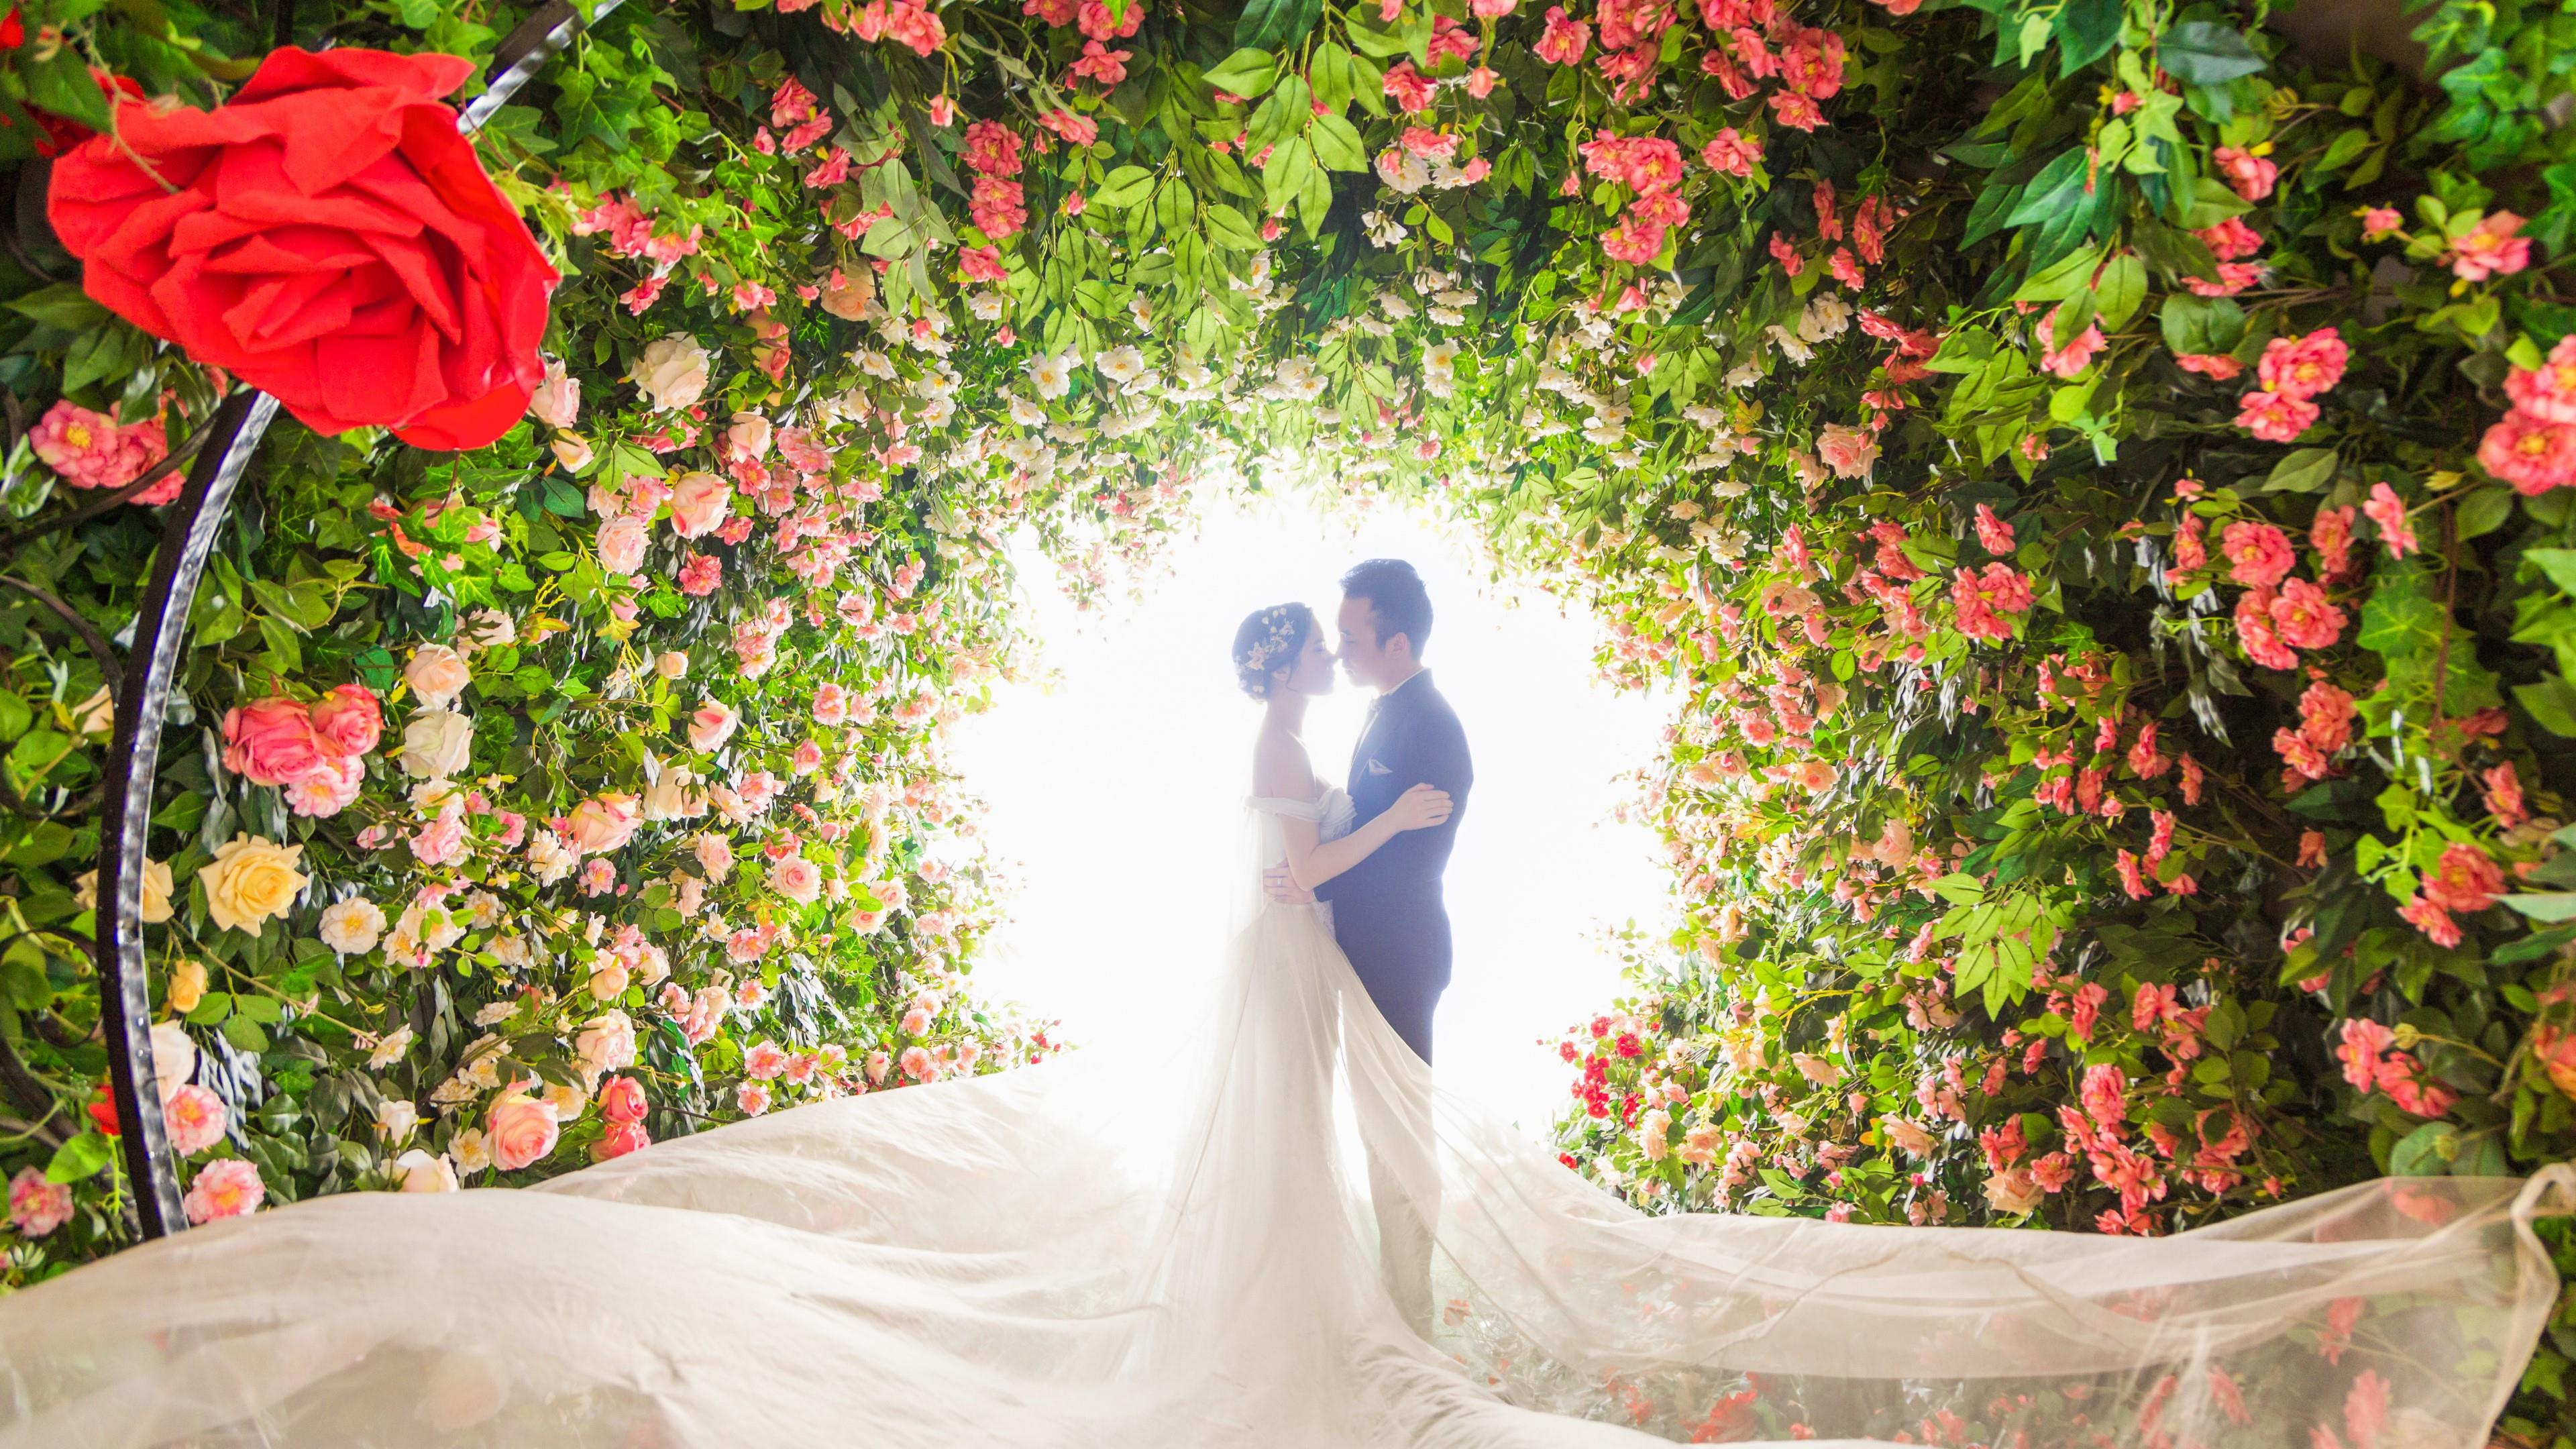 Top Free Wedding Backgrounds